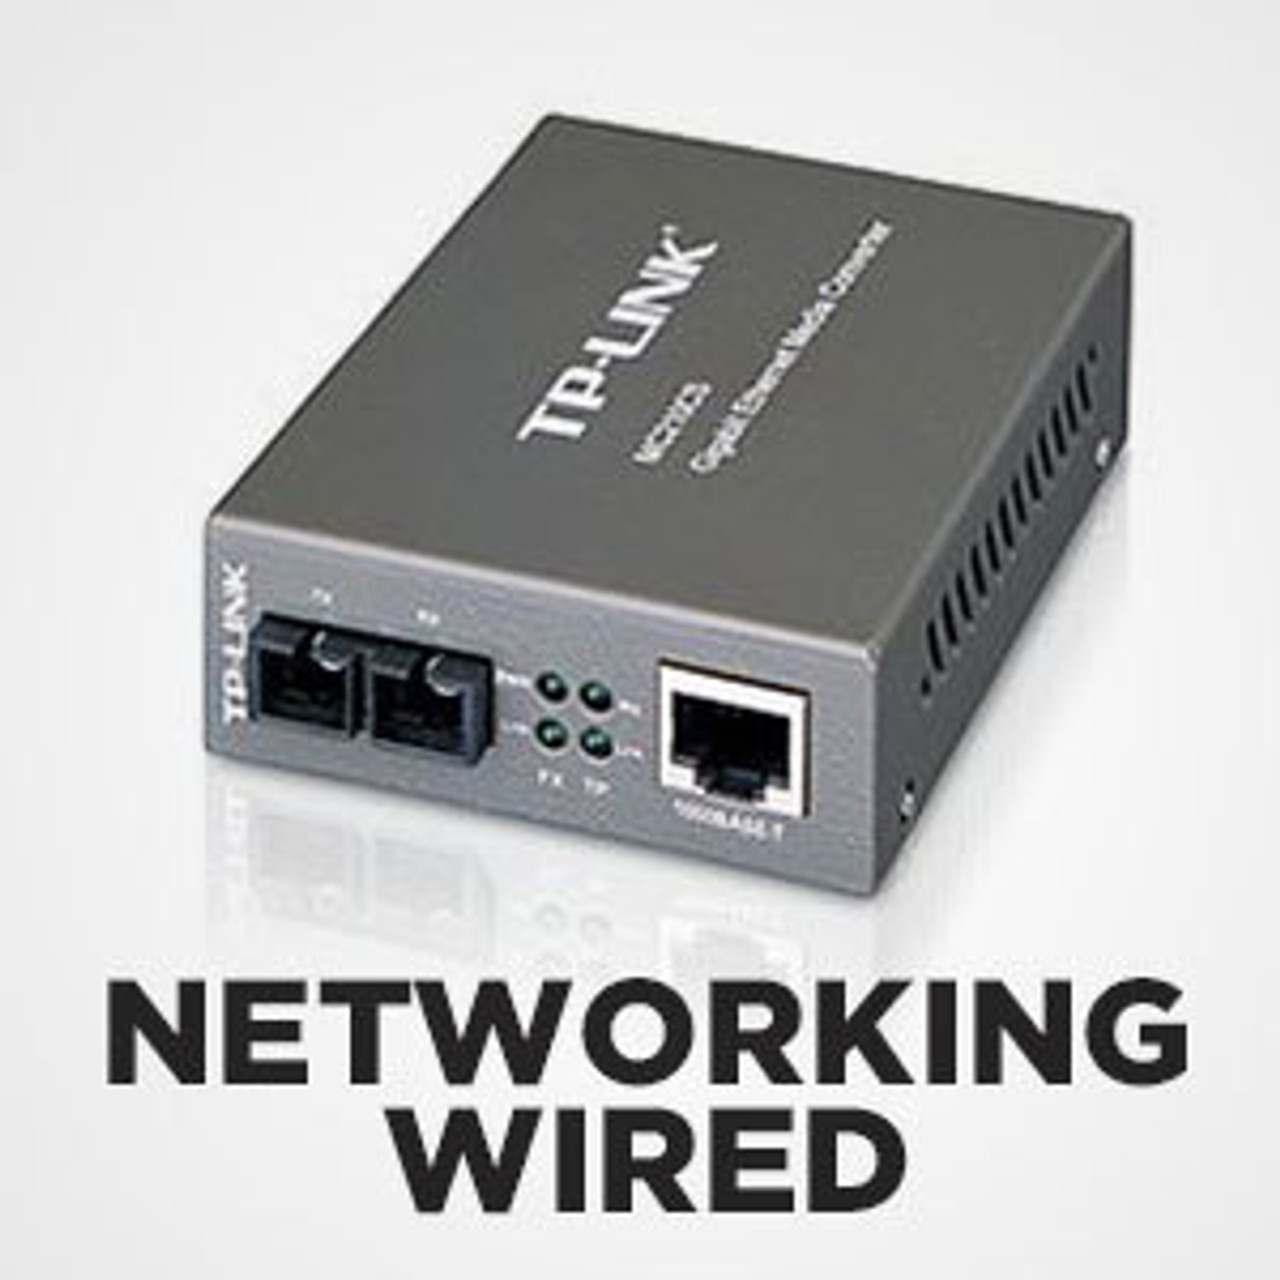 Networking Wired